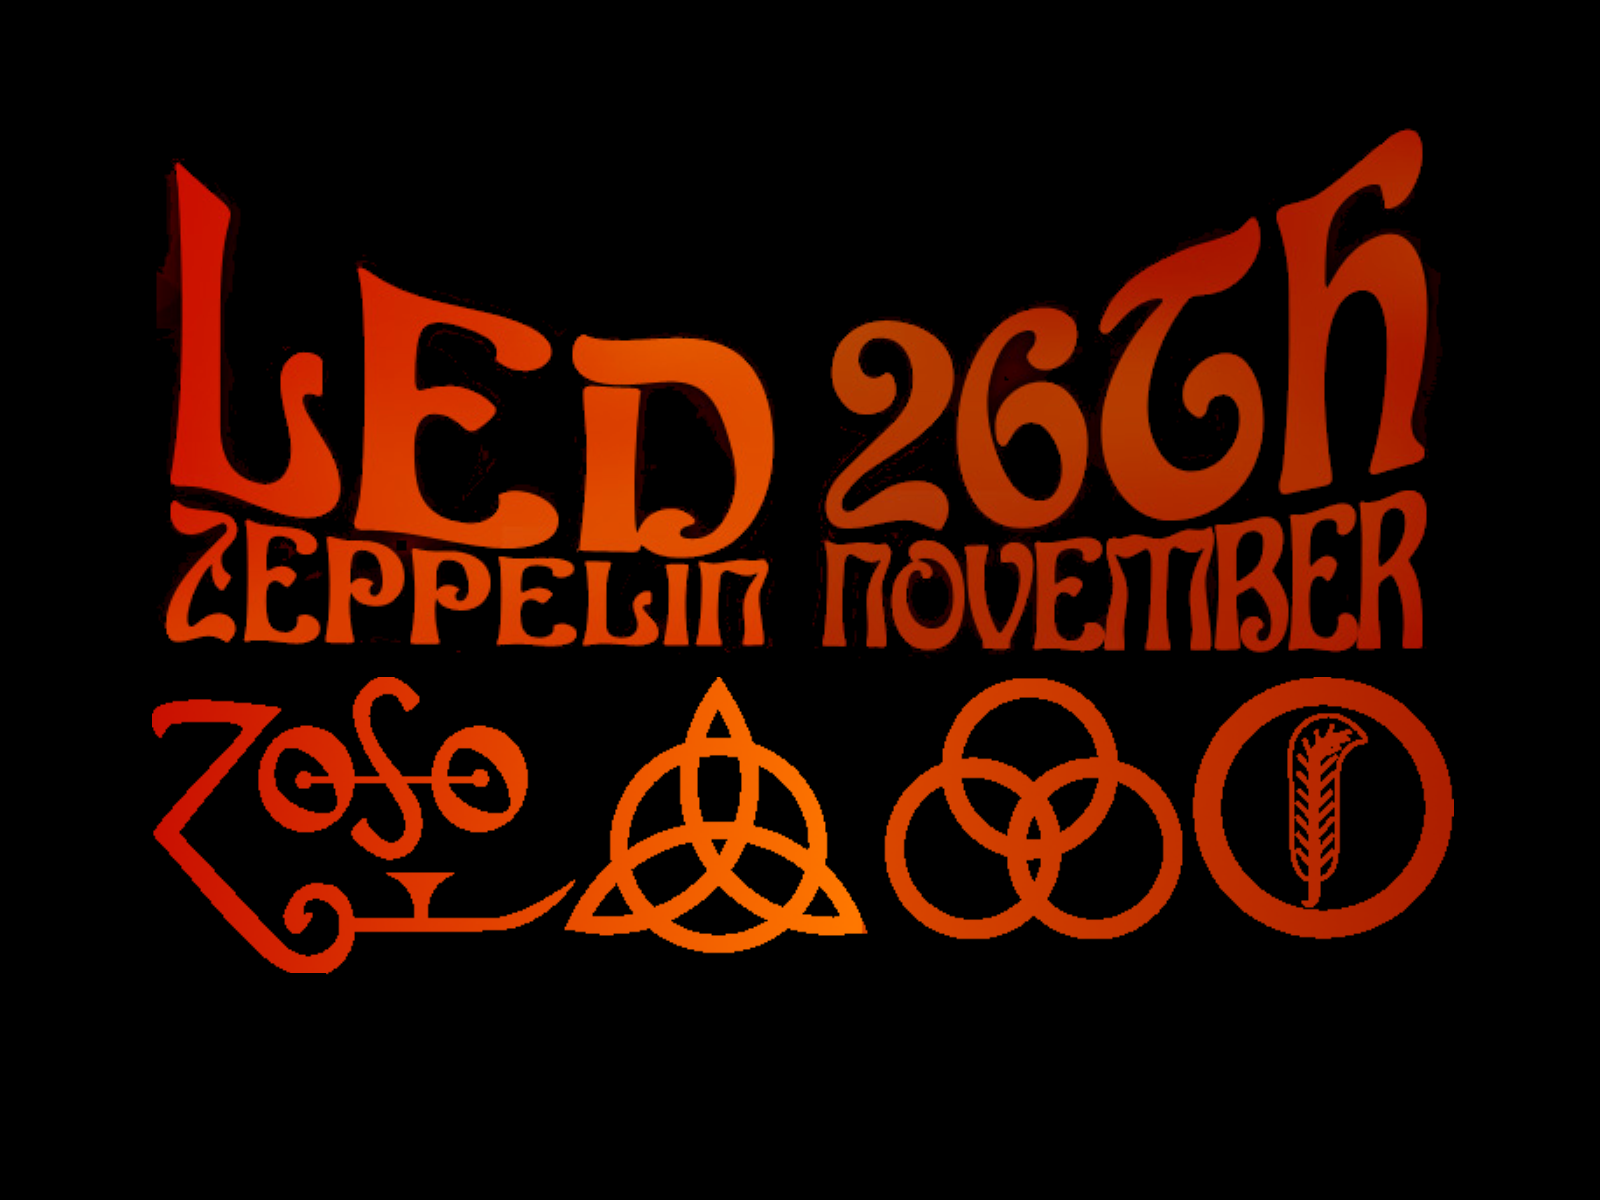 Led Zeppelin Reunion Wallpaper By Dread Librarian On Deviantart